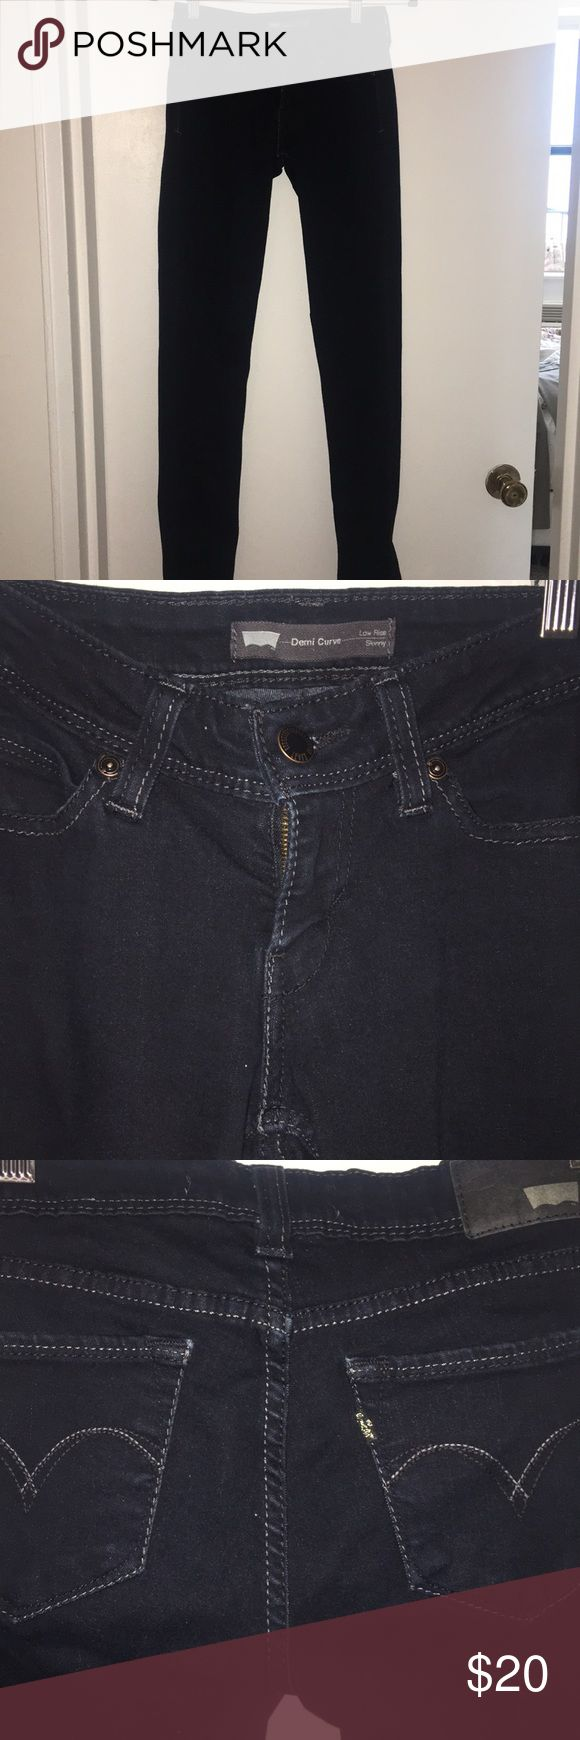 Levi Demi Curve Skinny Jeans Levi Demi Curve Skinny Jeans Women's size 3M Low Rise Skinny Jeans Soft and broken in but nothing wrong with them. Great quality Jeans. Price is negotiable, make an offer! Levi's Jeans Skinny